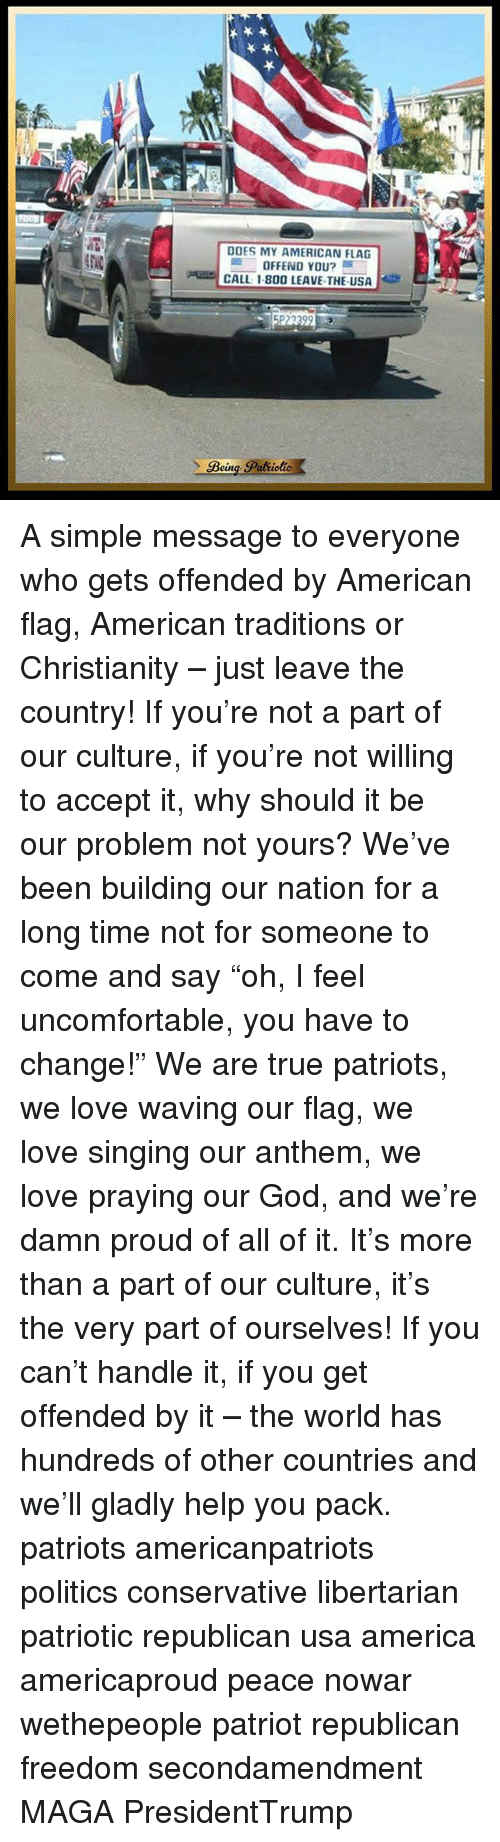 """America, God, and Love: DOES MY AMERICAN FLAG  OFFEND YOU?  CALL: 1.800 LEAVE THE USA  Bein  Pattiolie A simple message to everyone who gets offended by American flag, American traditions or Christianity – just leave the country! If you're not a part of our culture, if you're not willing to accept it, why should it be our problem not yours? We've been building our nation for a long time not for someone to come and say """"oh, I feel uncomfortable, you have to change!"""" We are true patriots, we love waving our flag, we love singing our anthem, we love praying our God, and we're damn proud of all of it. It's more than a part of our culture, it's the very part of ourselves! If you can't handle it, if you get offended by it – the world has hundreds of other countries and we'll gladly help you pack. patriots americanpatriots politics conservative libertarian patriotic republican usa america americaproud peace nowar wethepeople patriot republican freedom secondamendment MAGA PresidentTrump"""